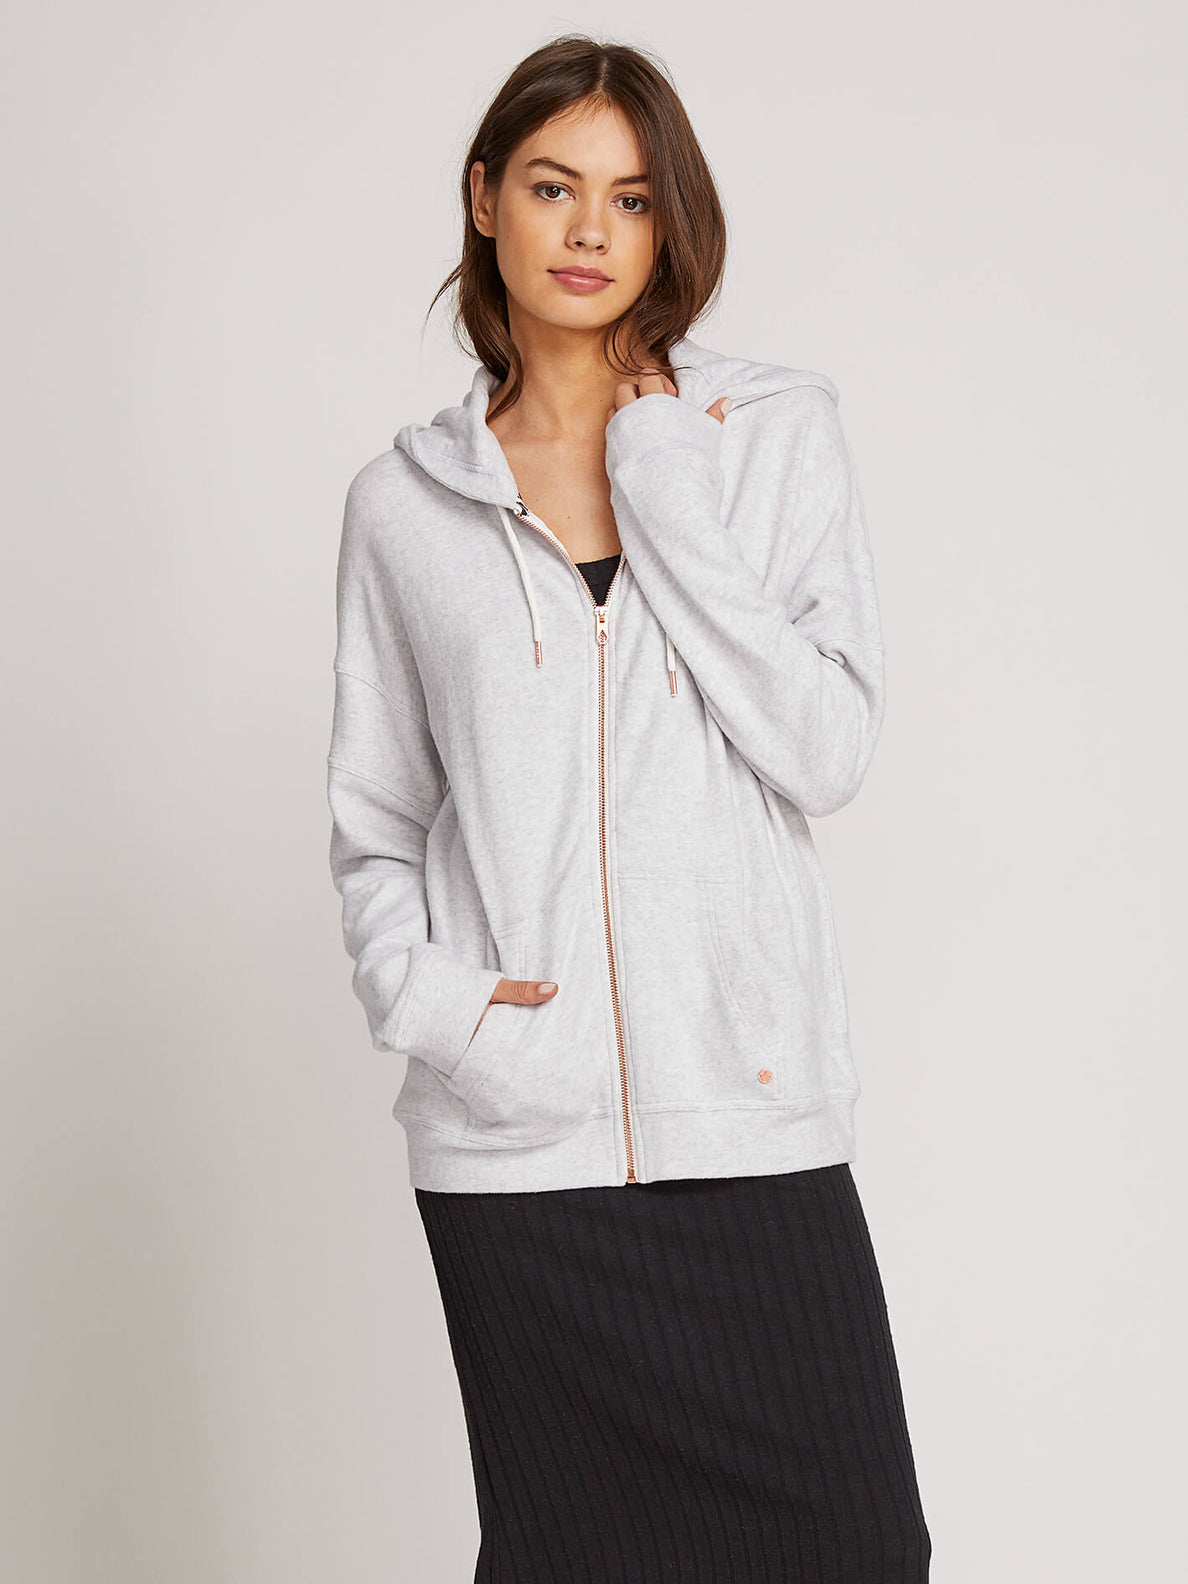 Lived In Lounge Zip Hoodie In Light Grey, Front View